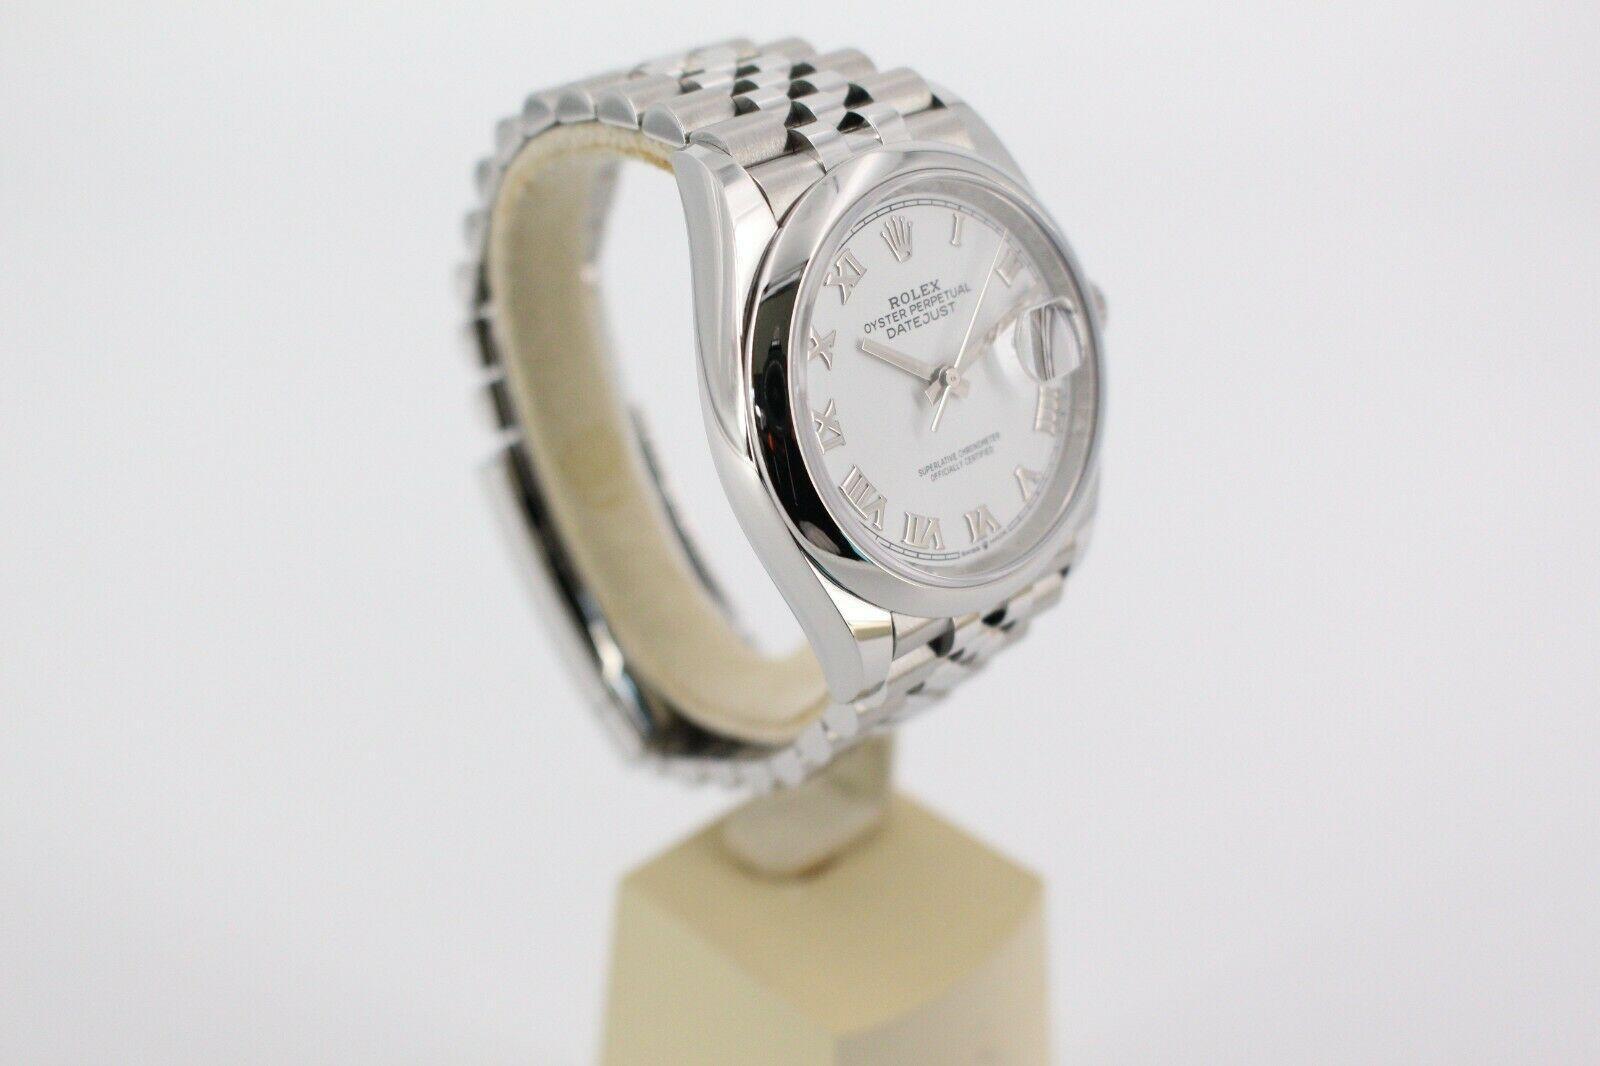 BRAND NEW Rolex Datejust 126200 Si  er Dial Stainless Steel Box Papers 15